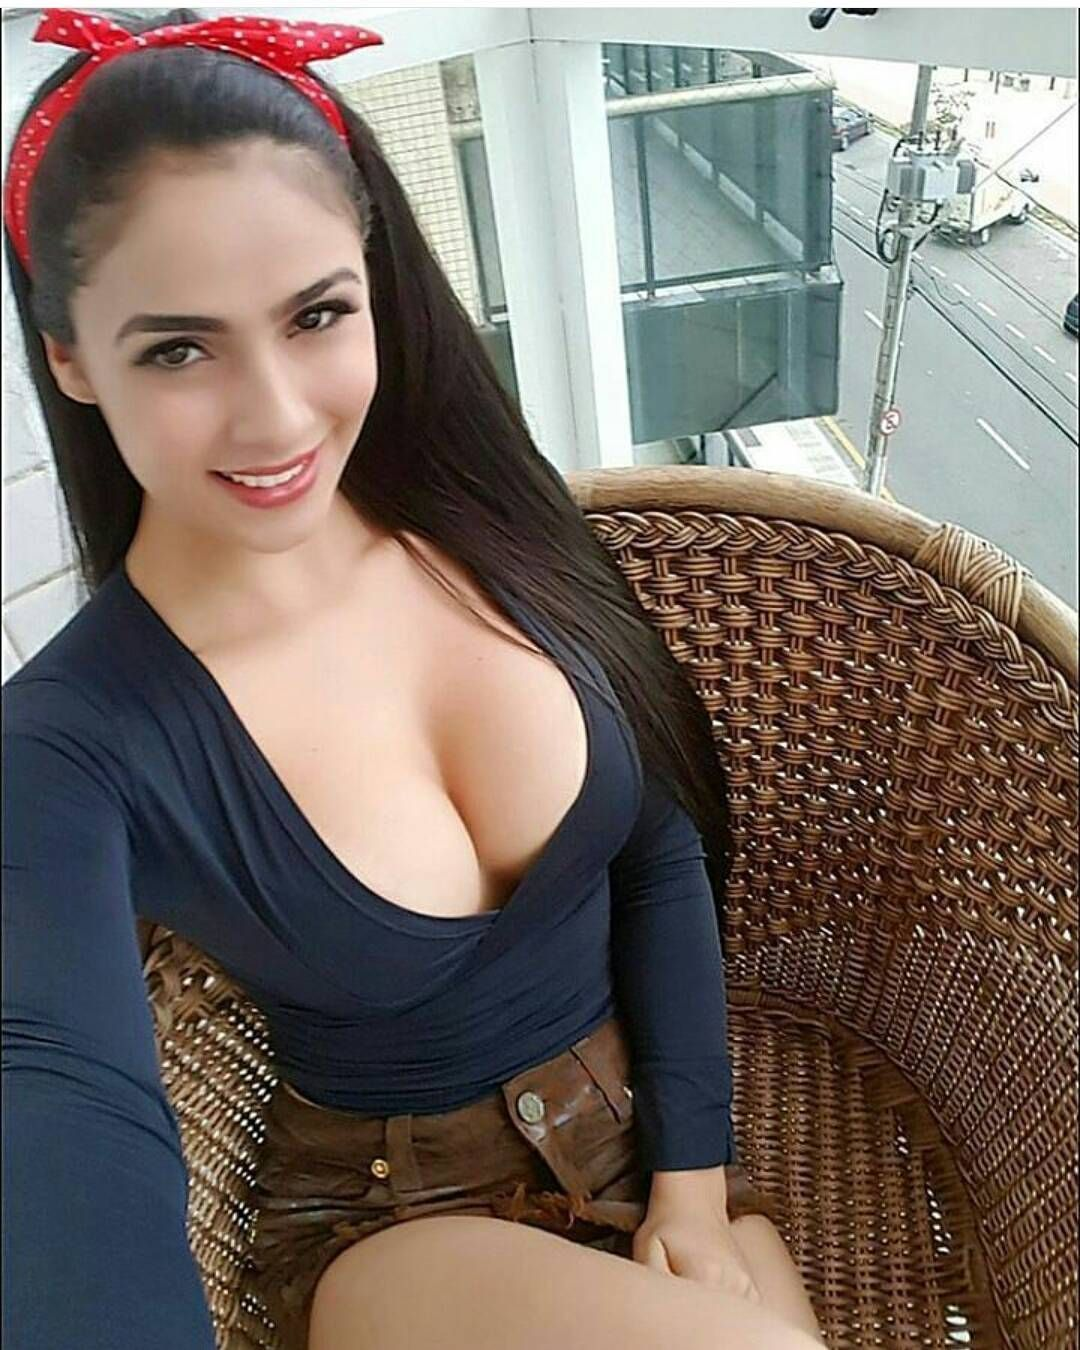 Busty shows cleavage